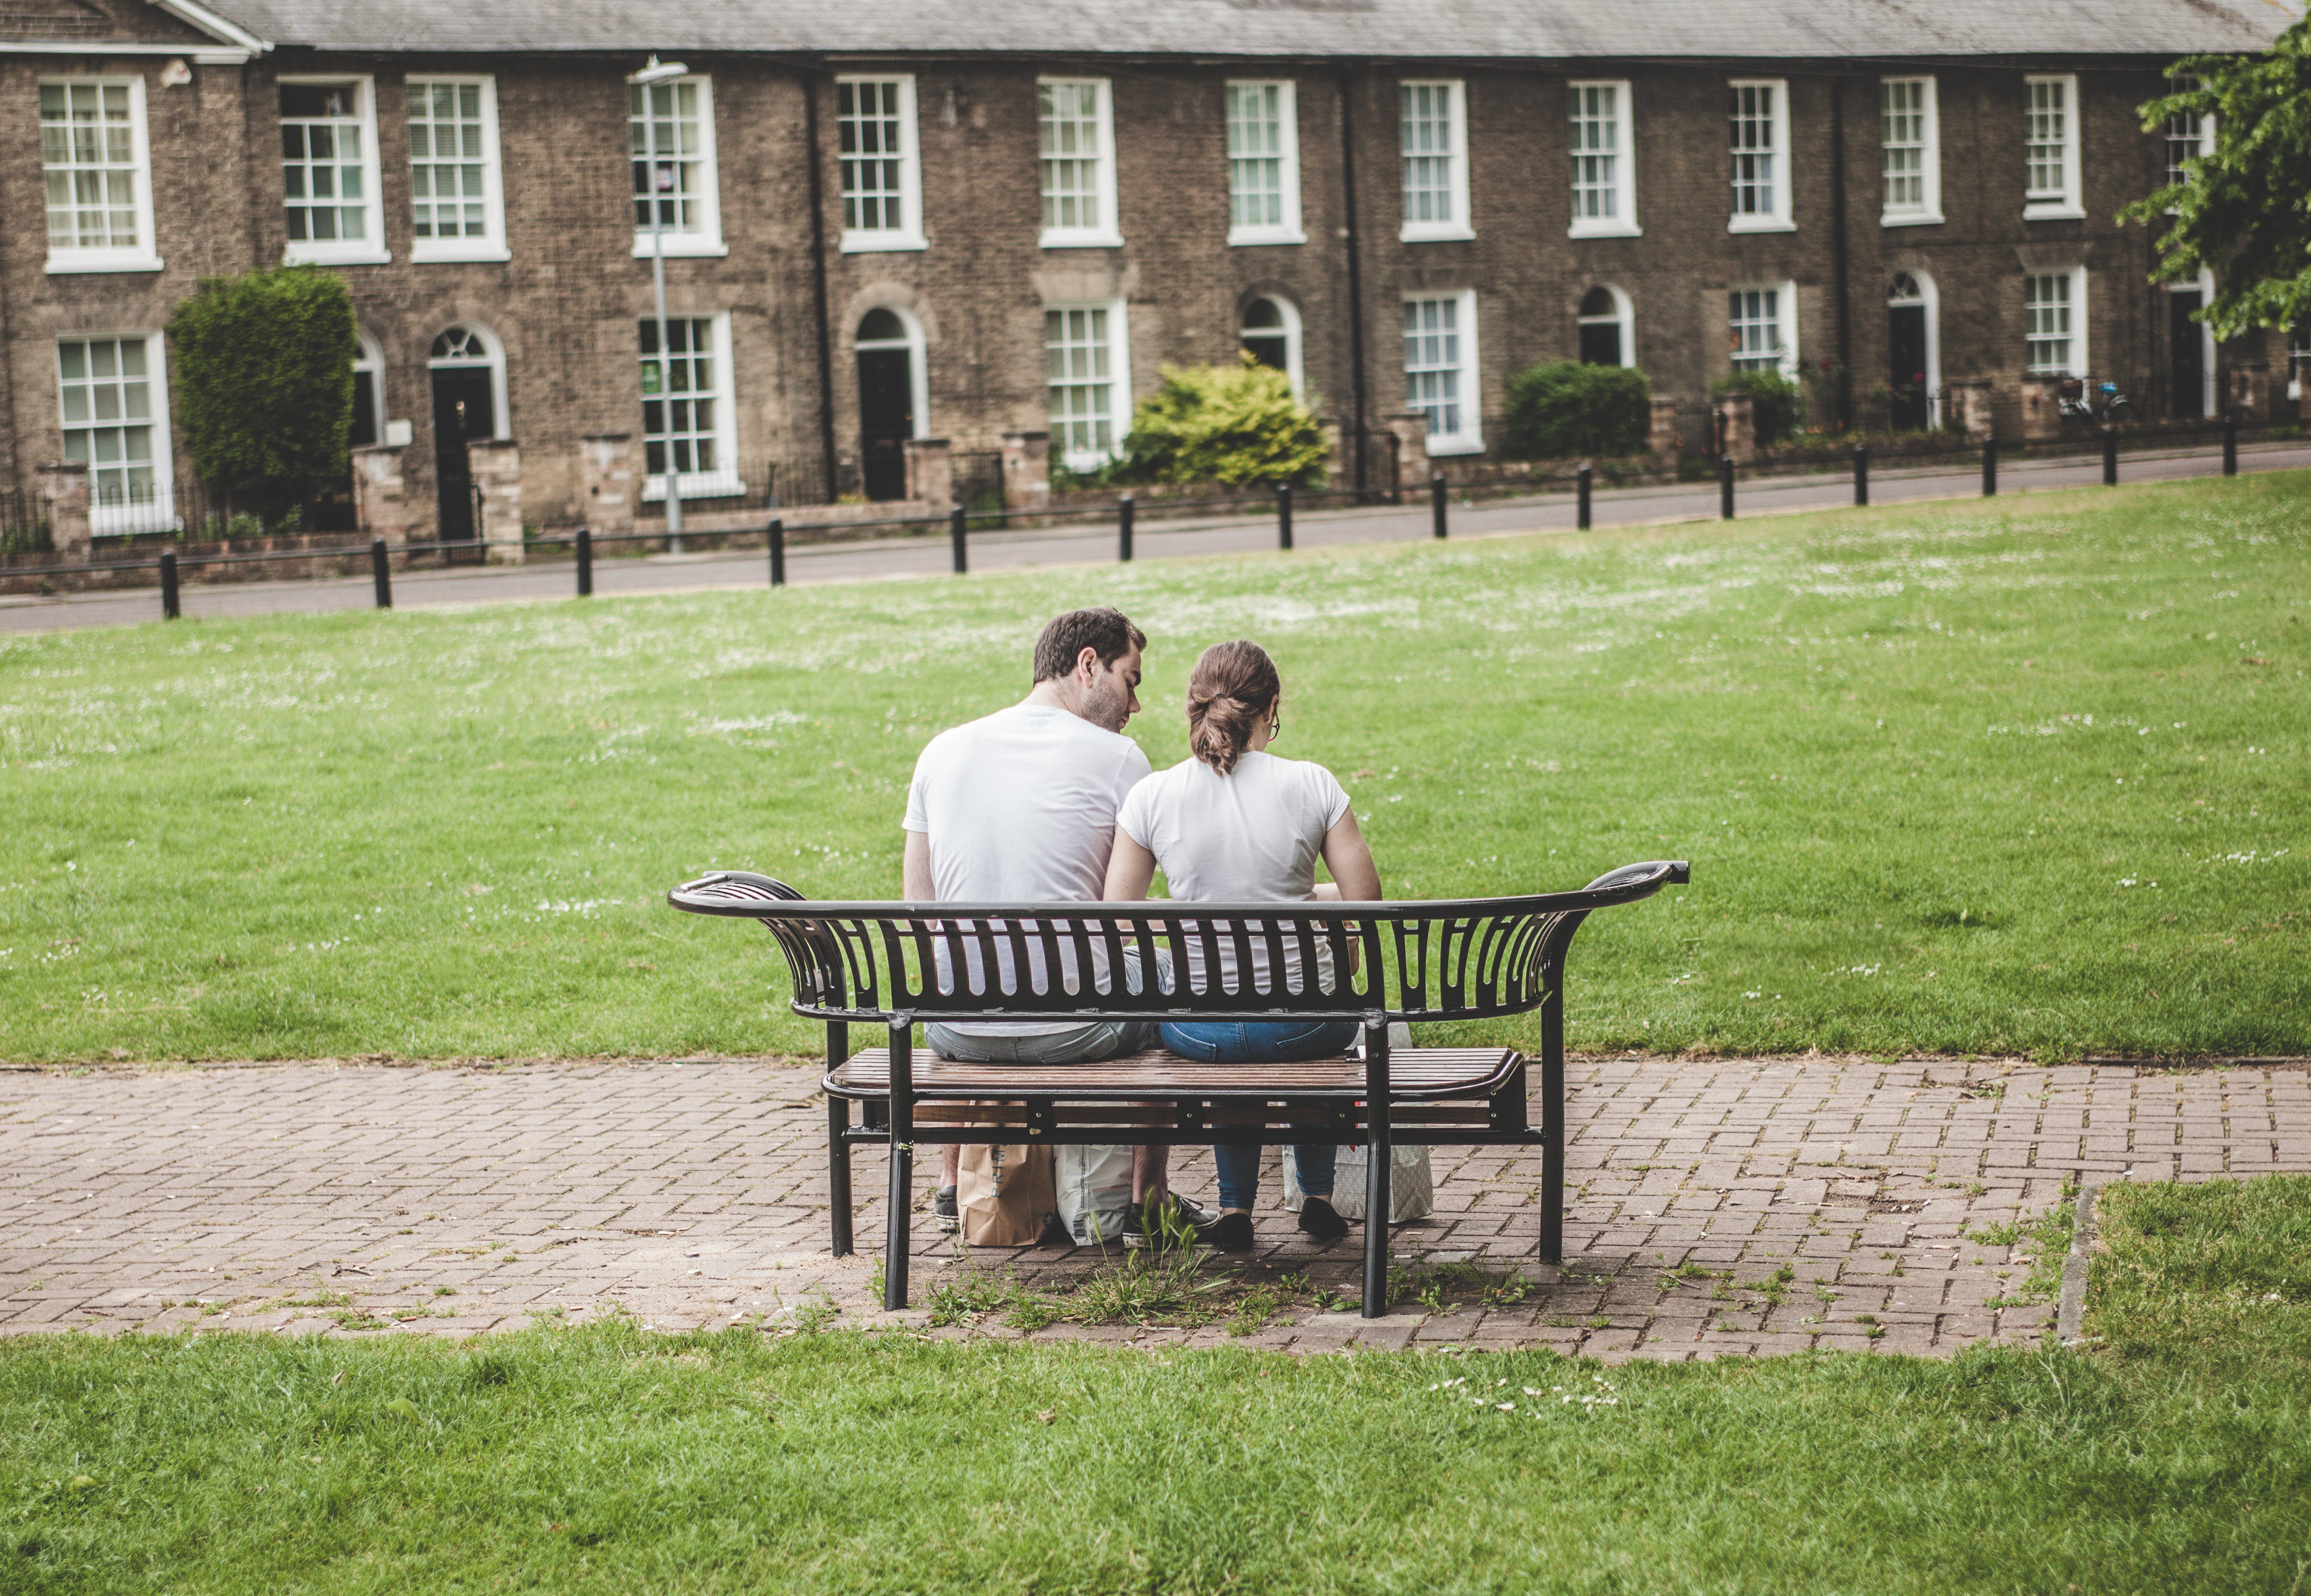 Free stock photo of bench, couple, building, sitting